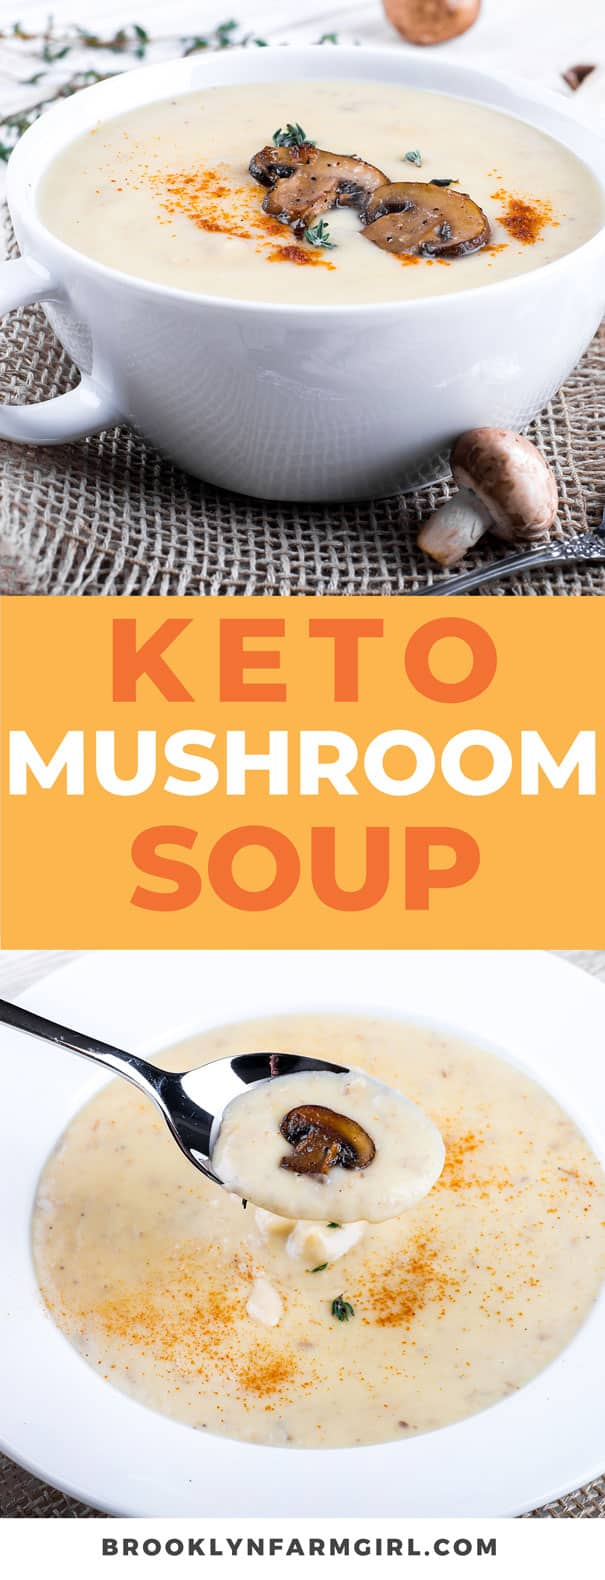 Keto Cream of Mushroom Soup recipe. This easy to make low carb recipe uses fresh mushrooms, heavy cream and cream cheese to make a delicious creamy bowl of soup!